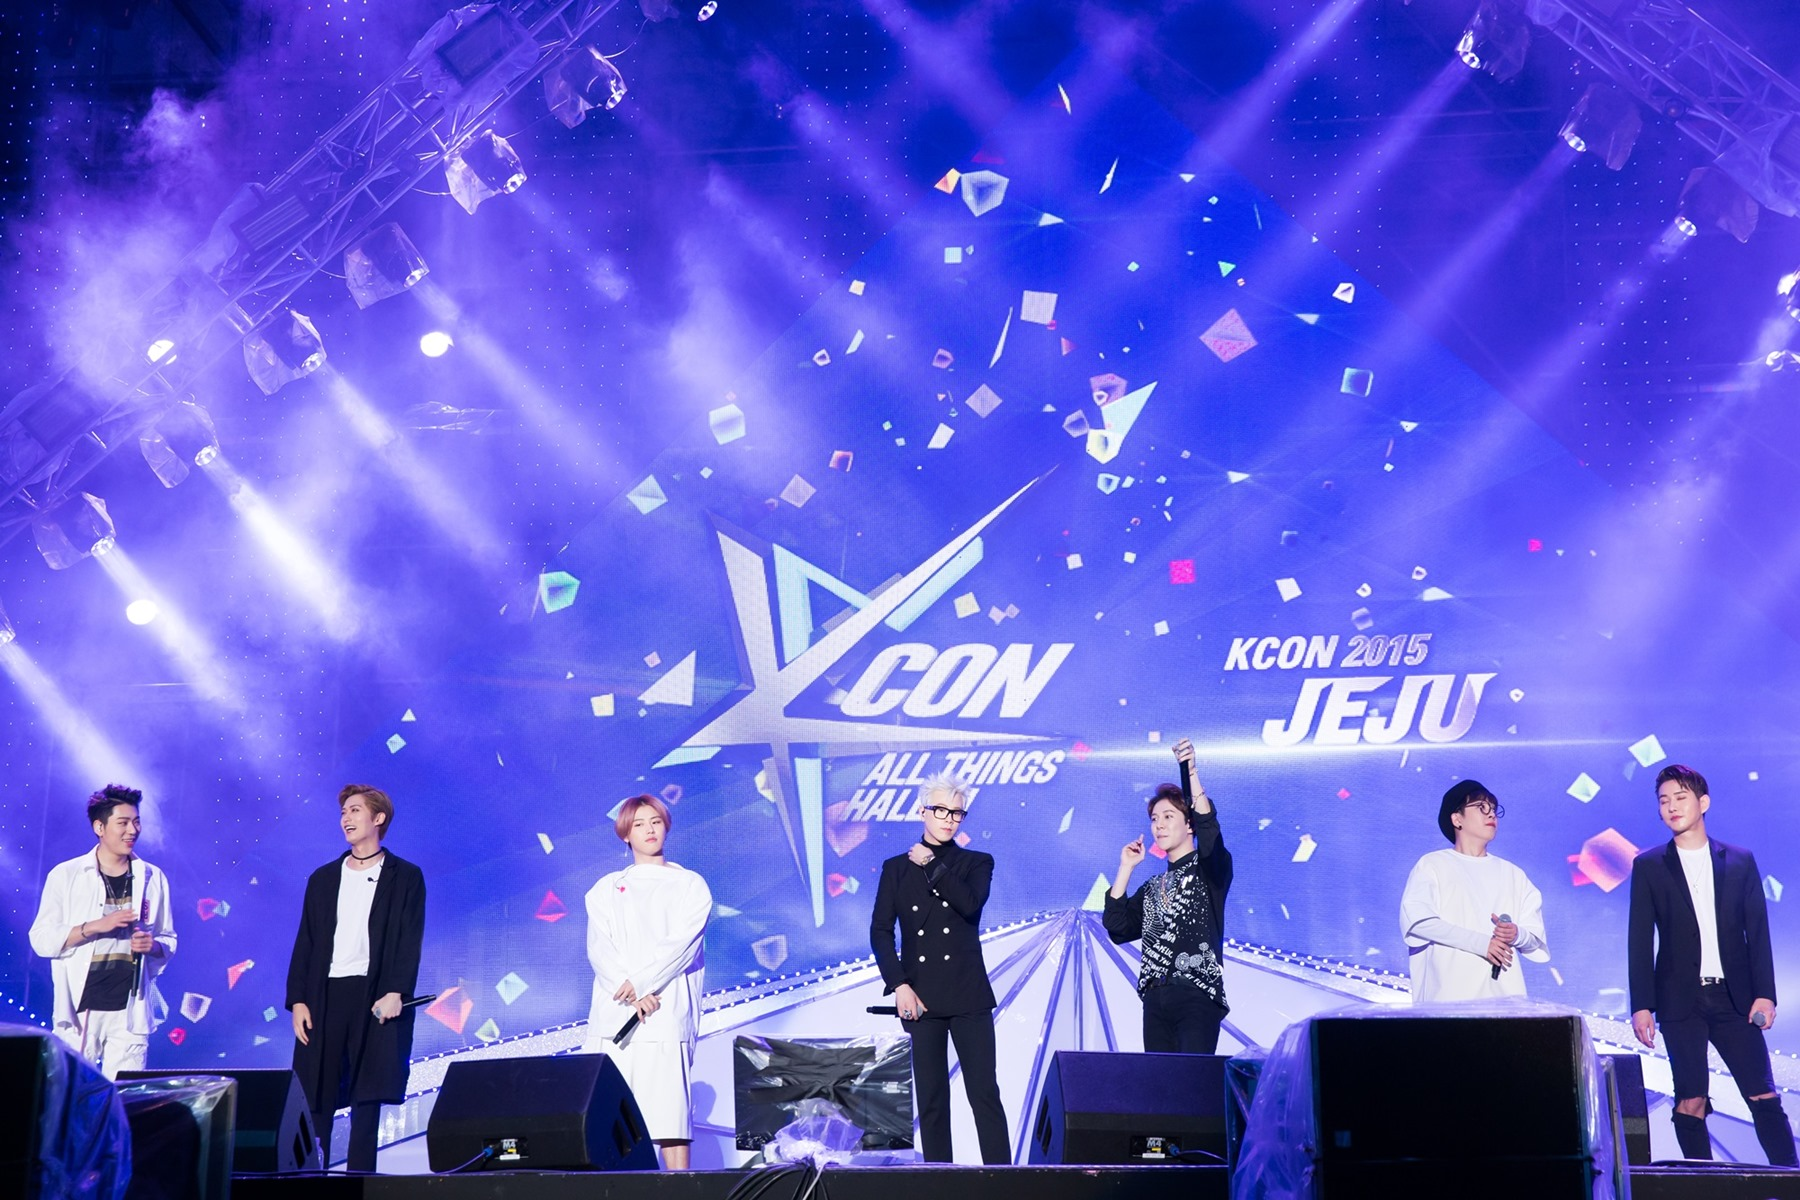 KCON held for the first time in Korea with 17,000 fans attending